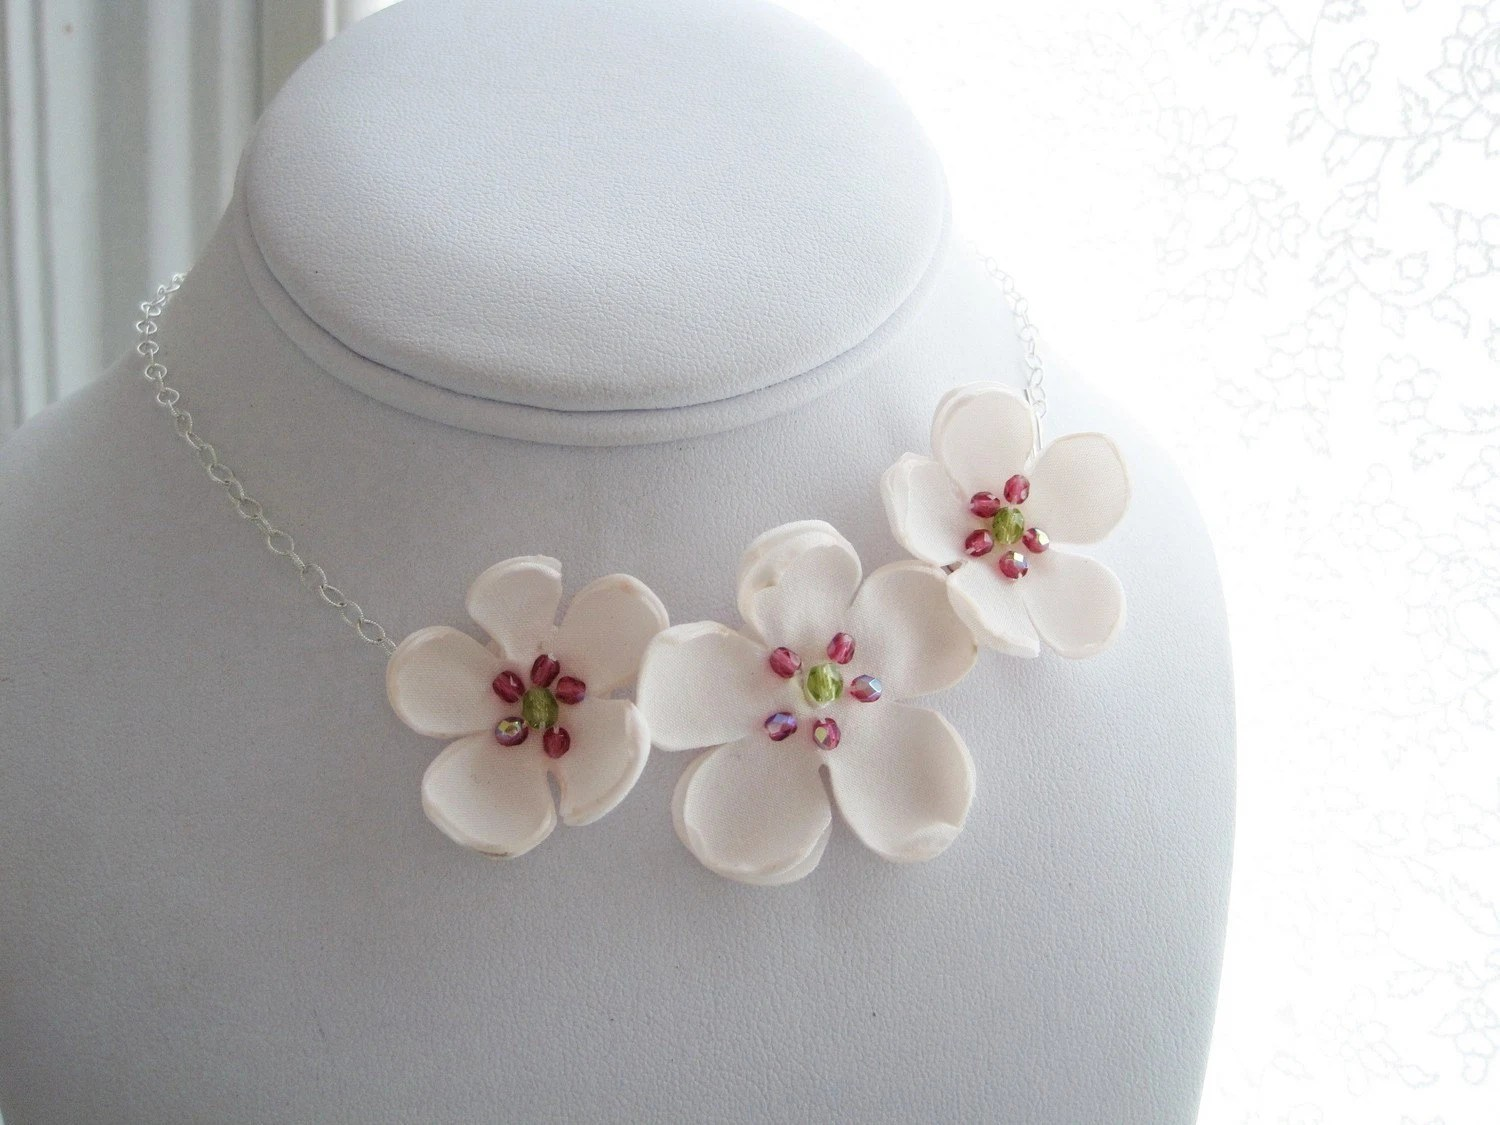 YUKIKO - sakura  - Made To Order - fabric flowers asymmetrical choker style necklace